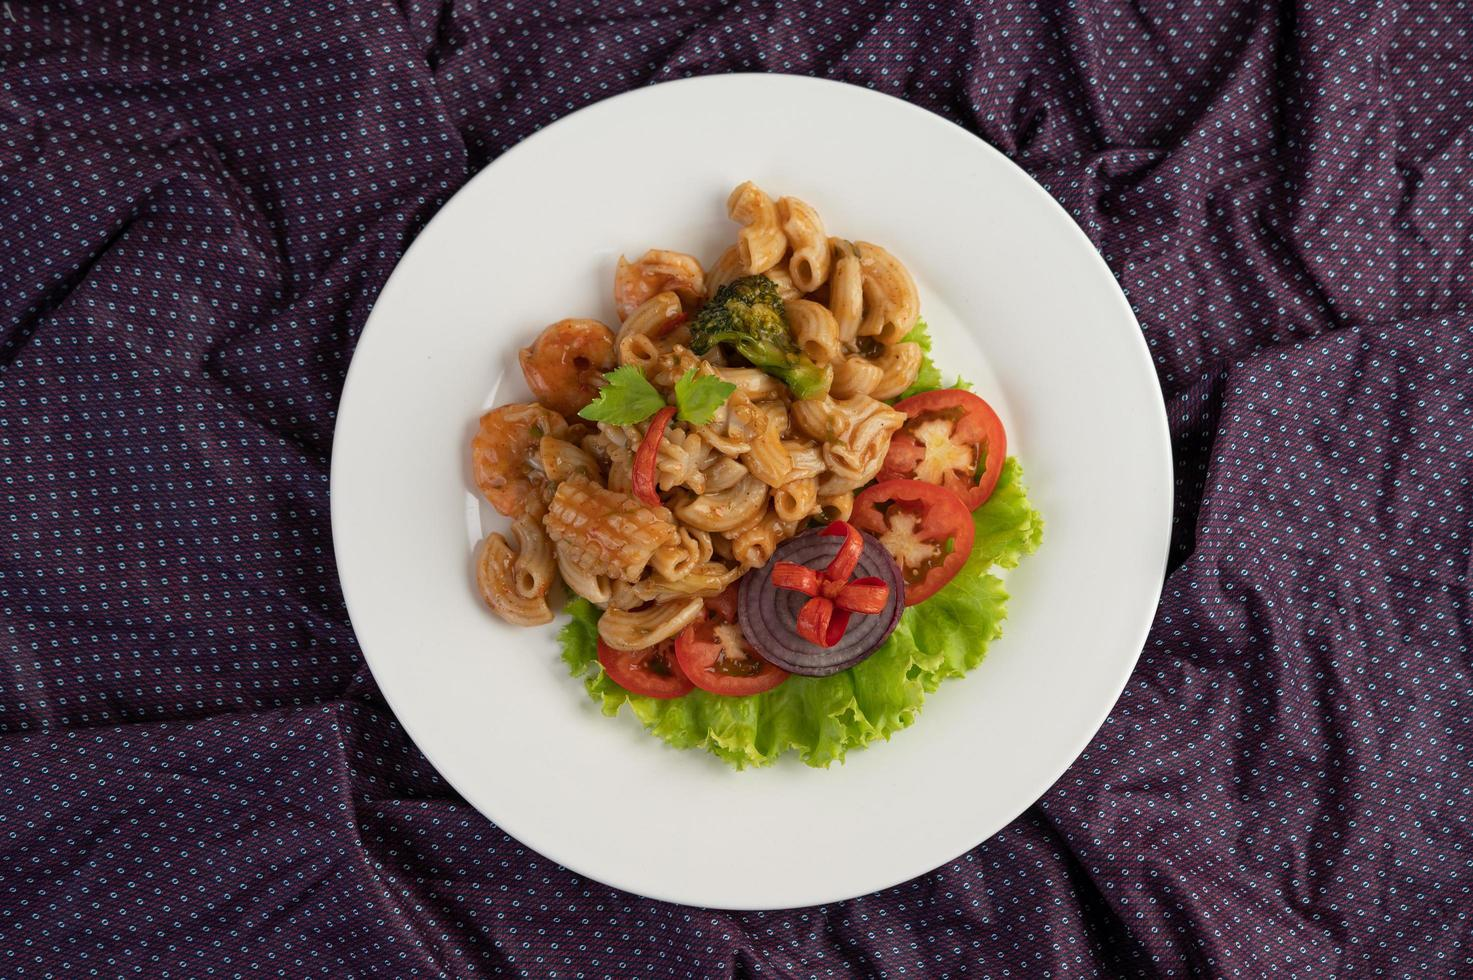 Stirred shrimp macaroni on a white plate with tomatoes and salad photo